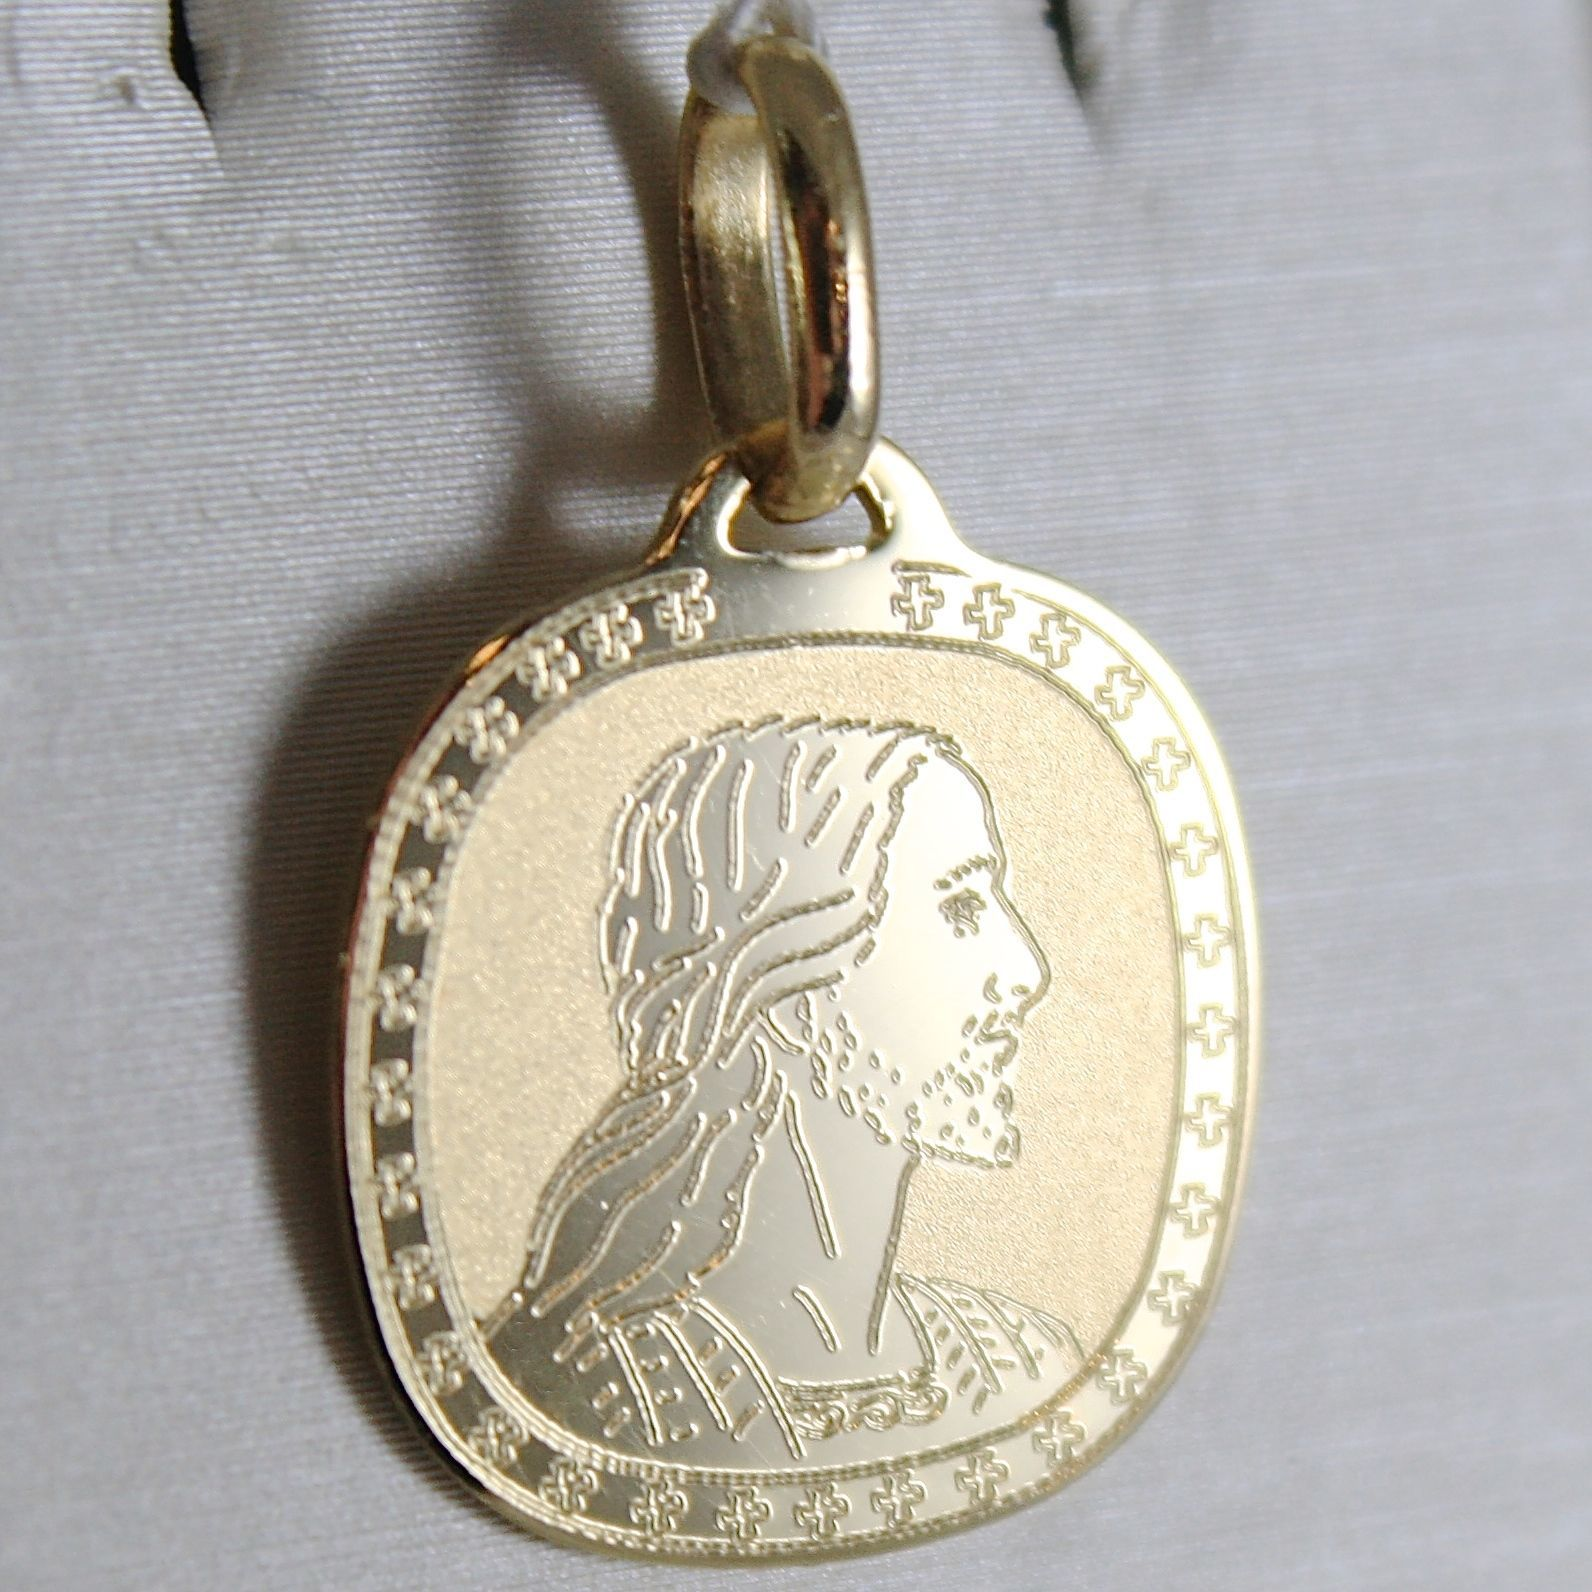 PENDENTIF MÉDAILLE OR JAUNE 750 18K, VISAGE CHRIST, CARRÉ, MADE IN ITALY